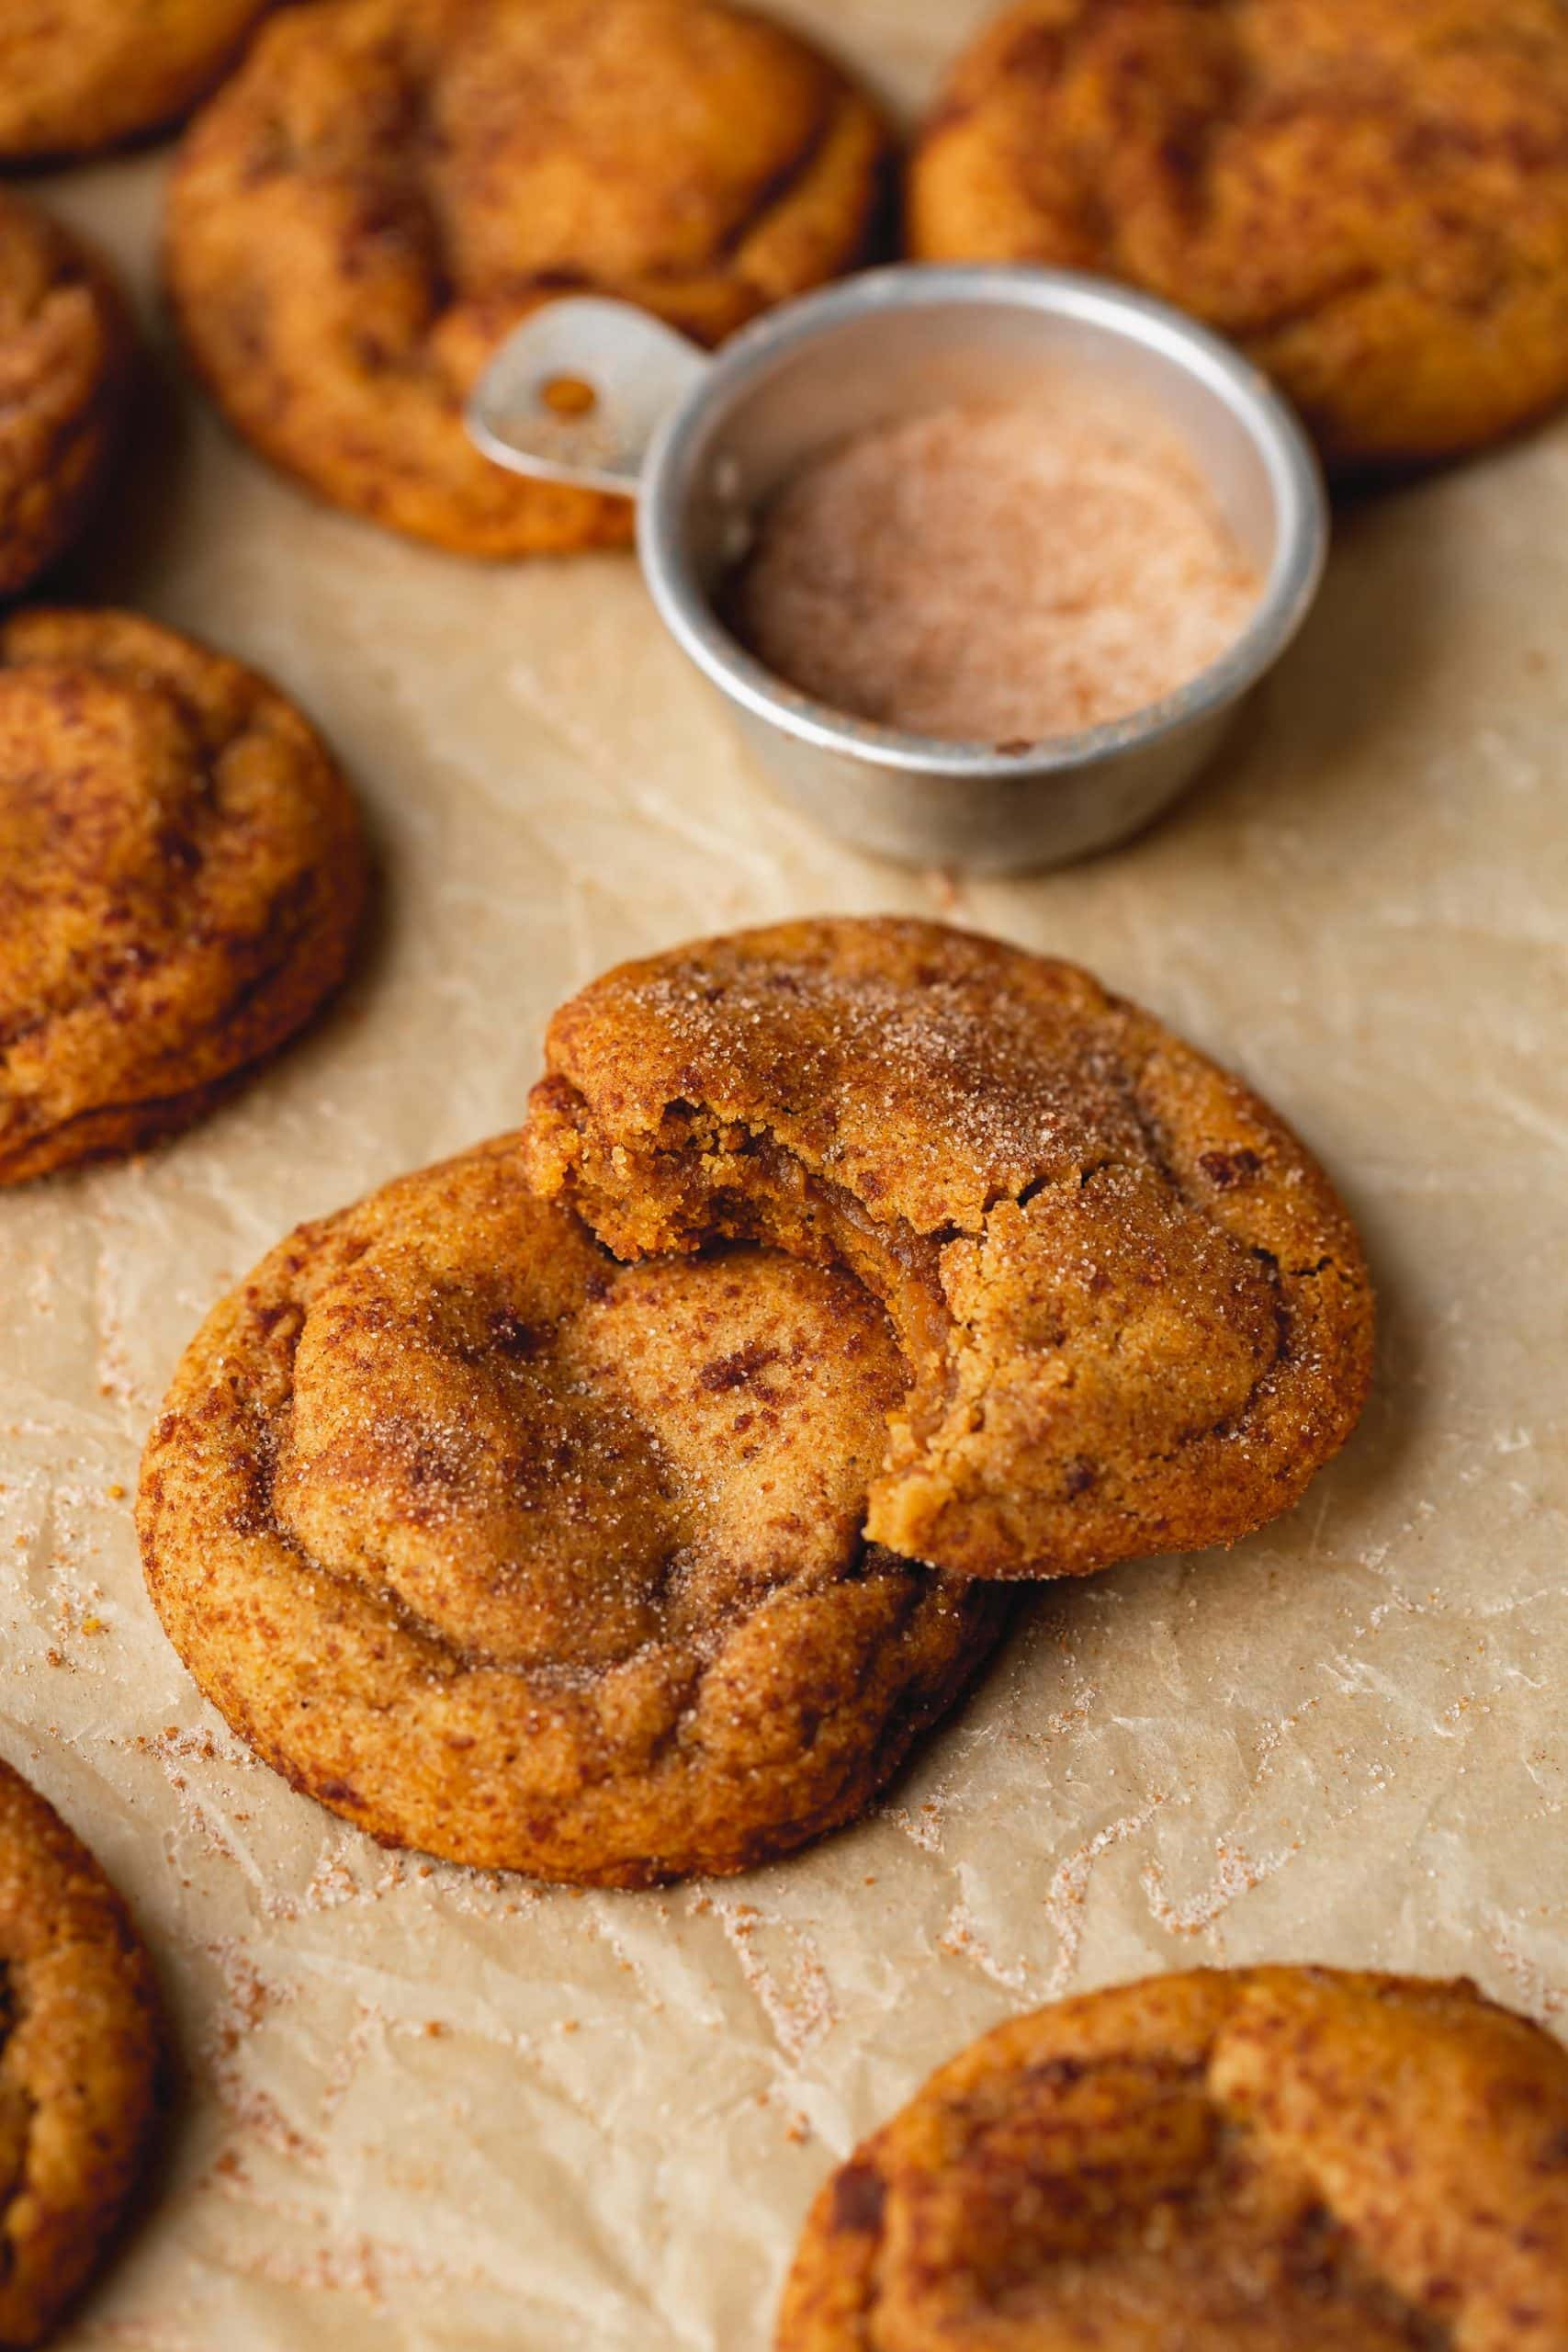 Two chewy pumpkin cookies stacked on top of each other. The cookie on top has a bite taken out of it and there is another cookie and a container of cinnamon sugar in the background.